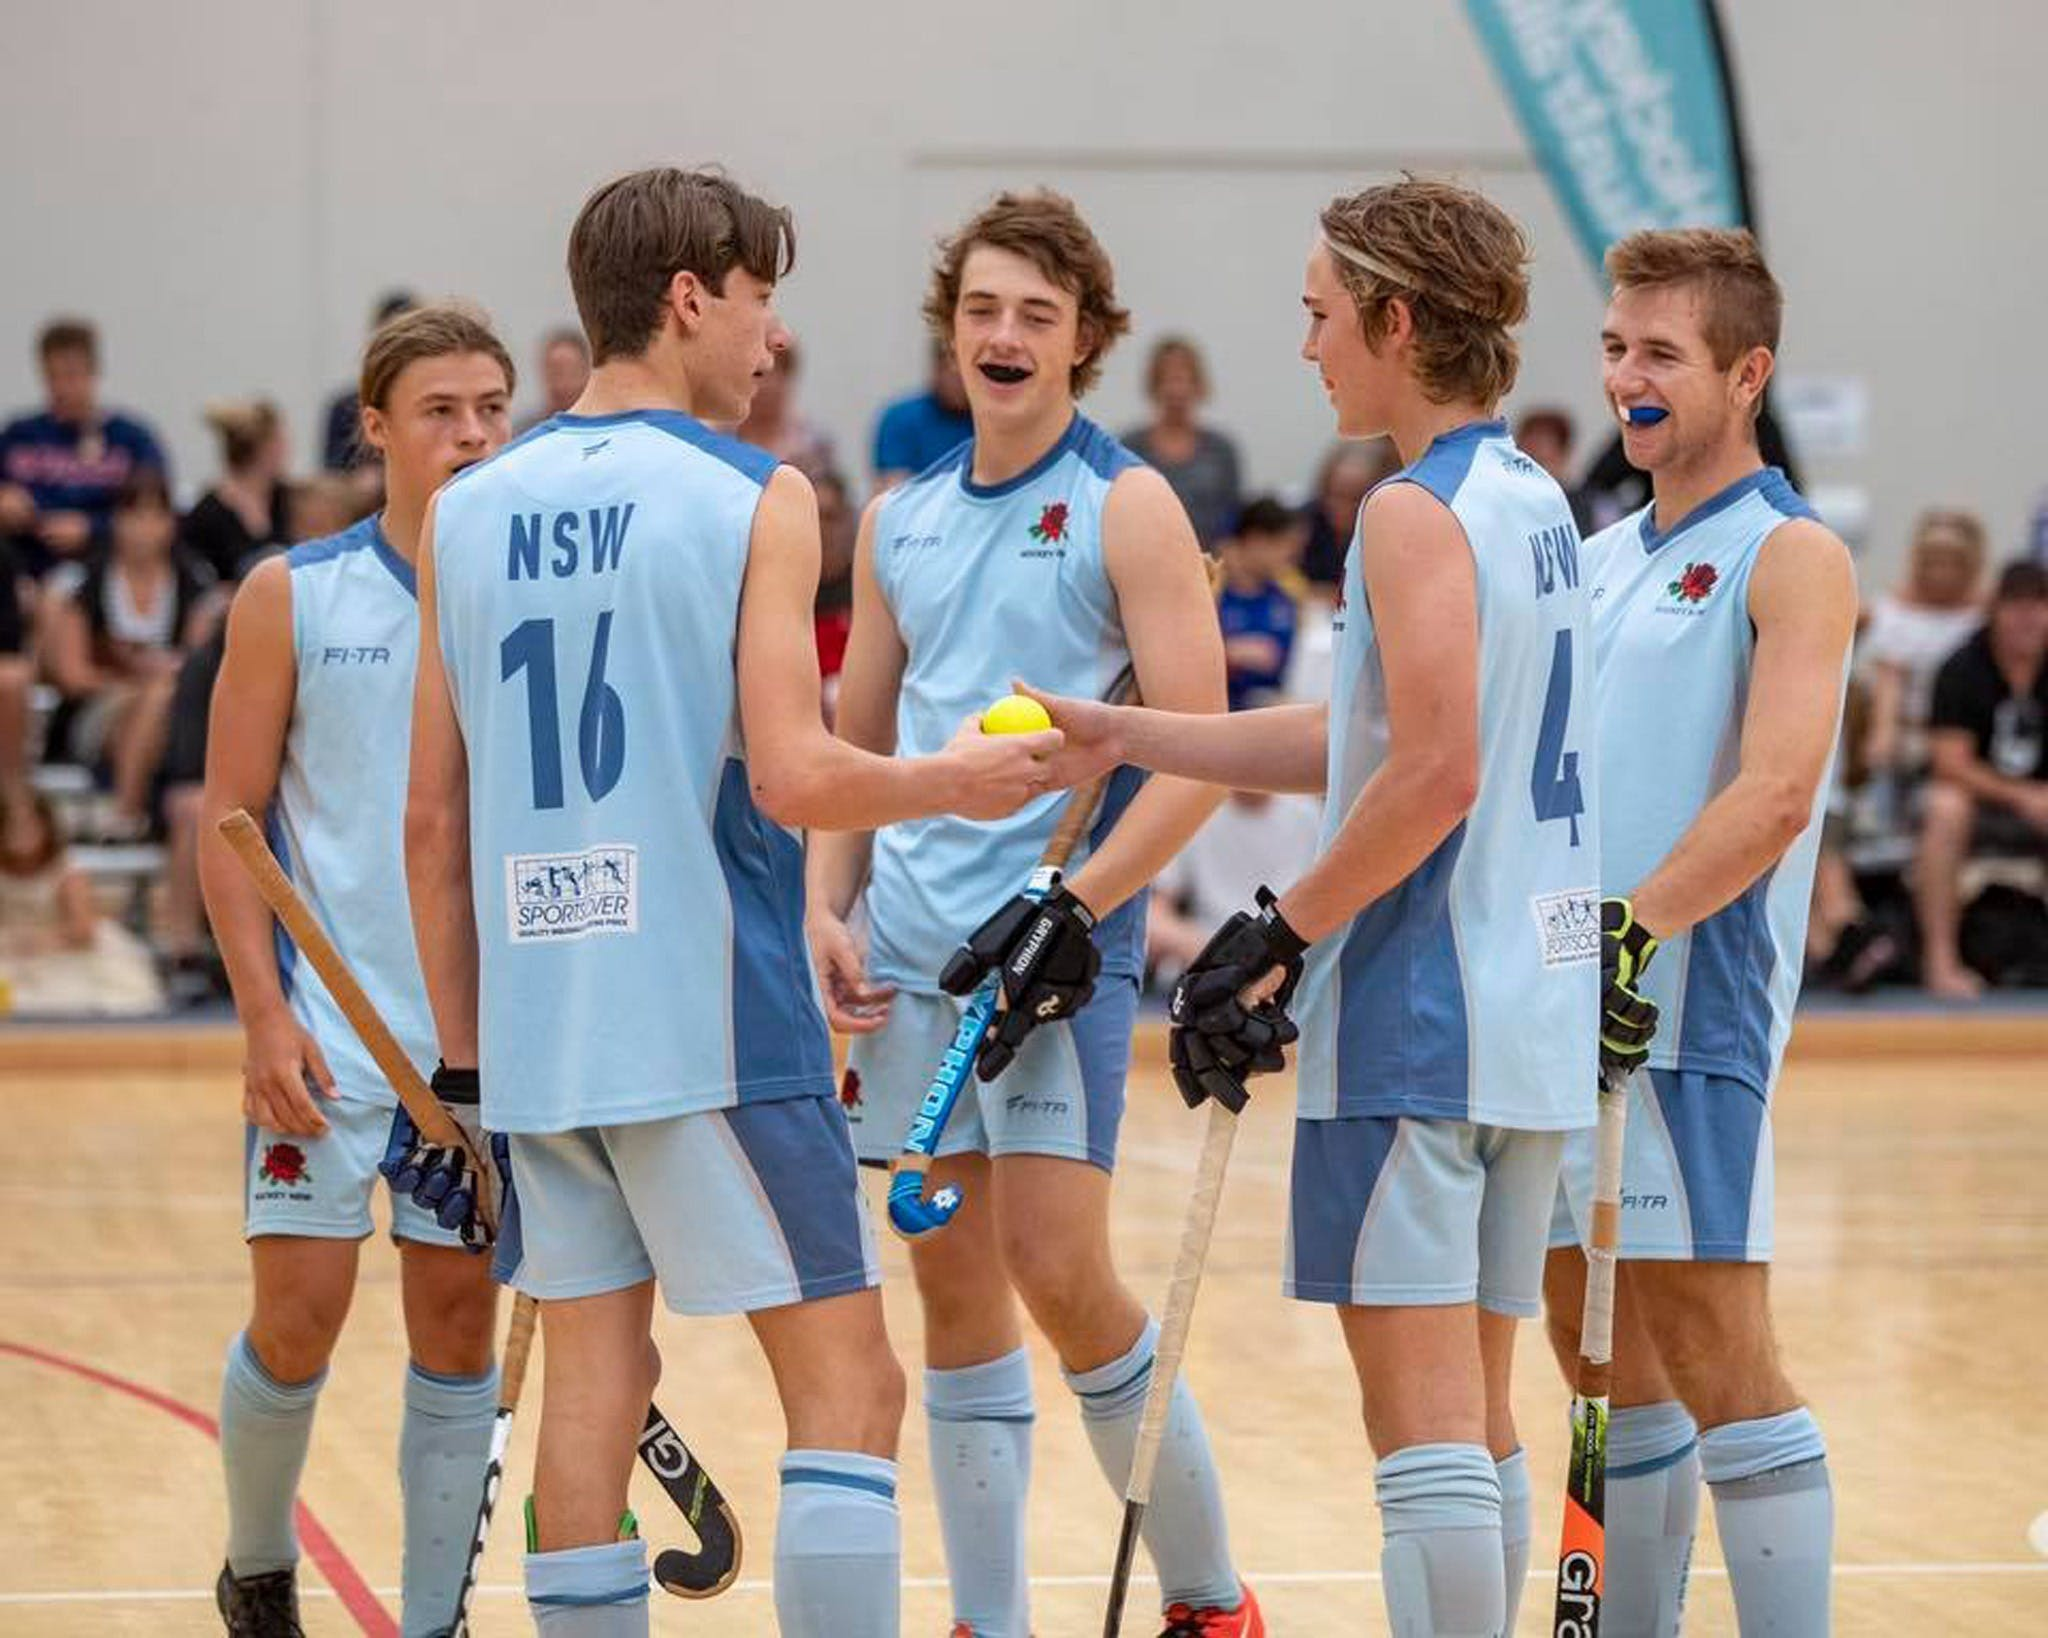 Hockey NSW Indoor State Championship  Open Men - Australia Accommodation